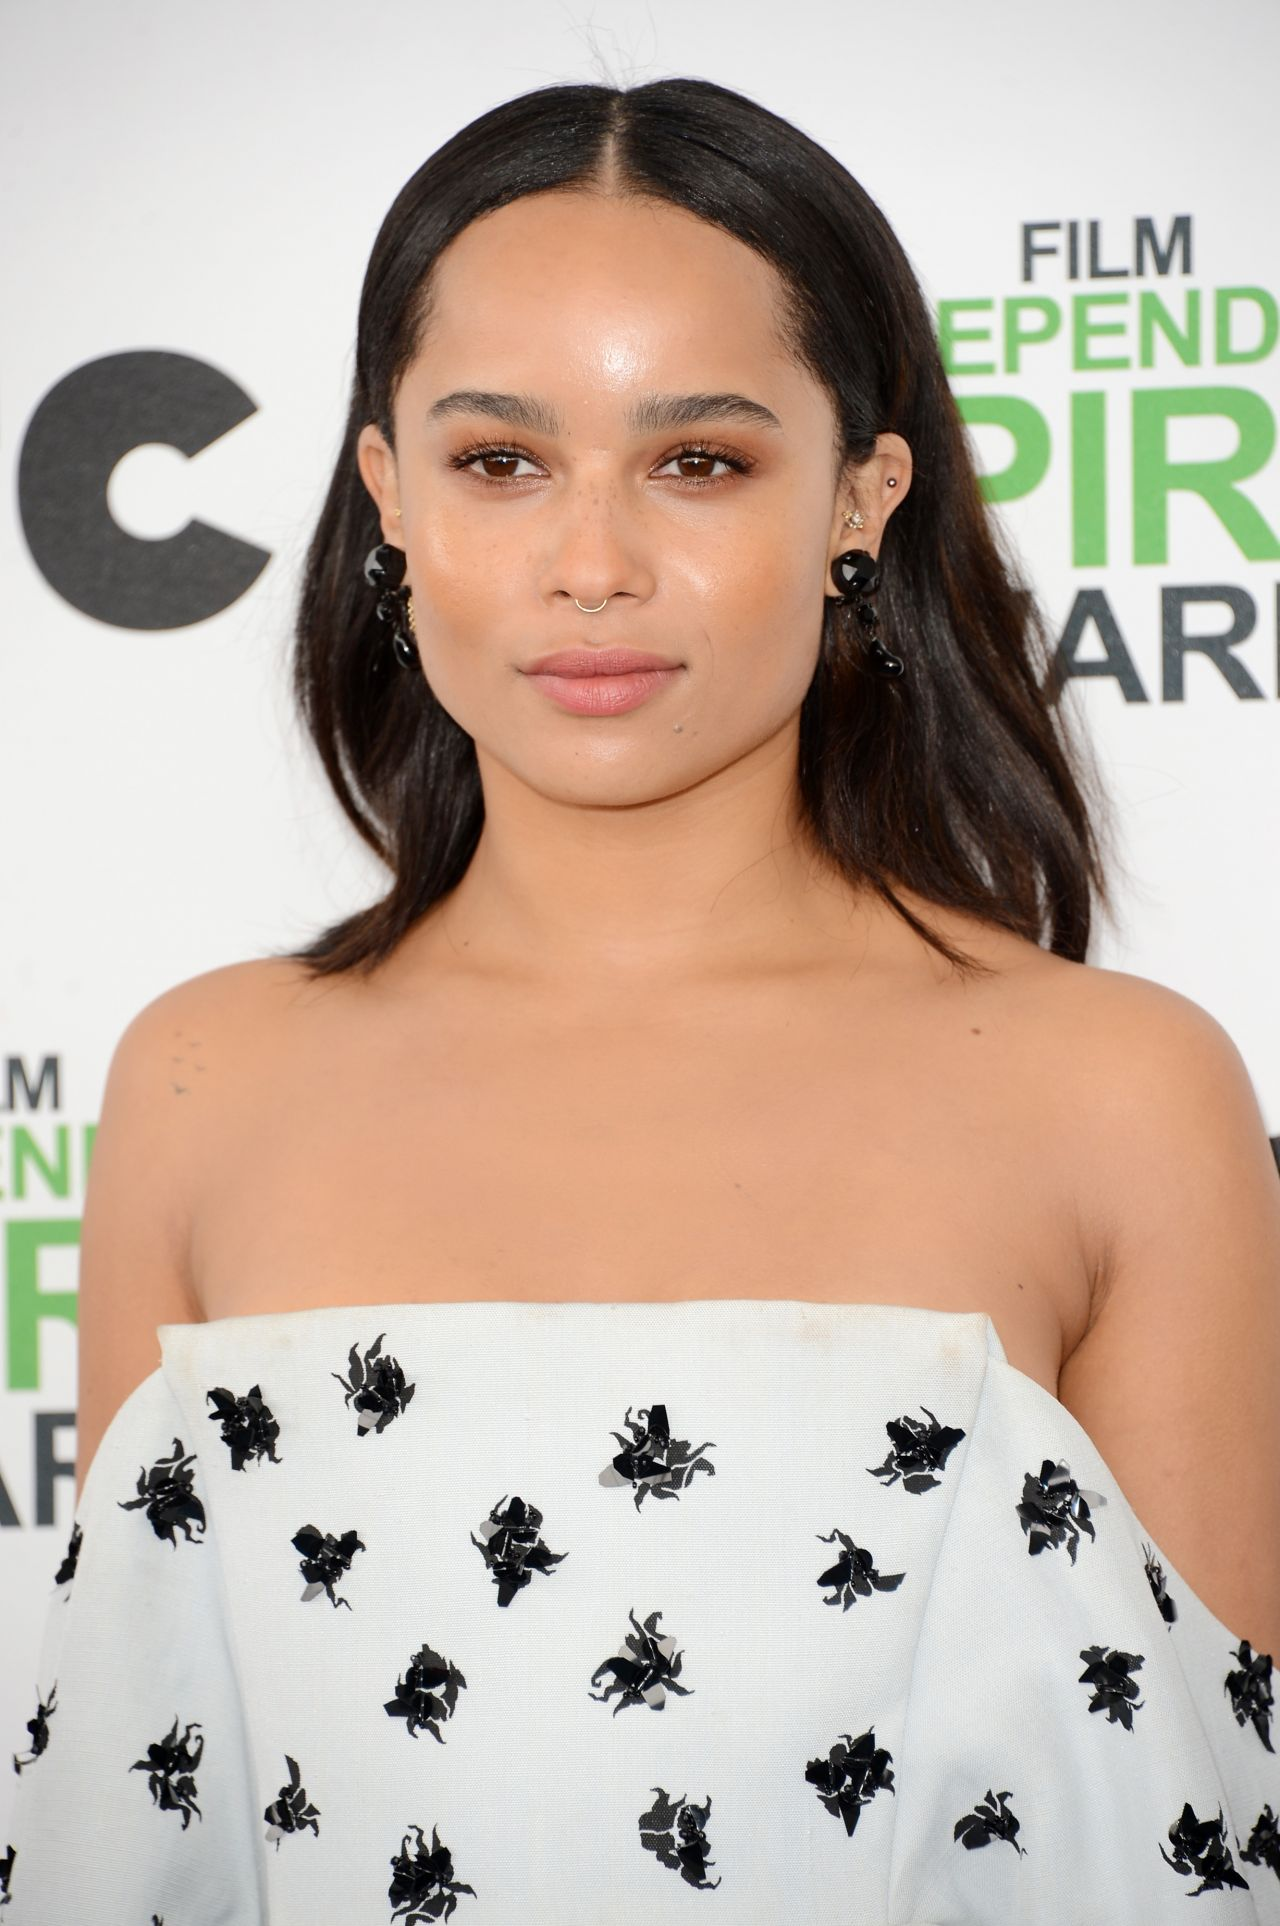 Zoe Kravitz in Balenciaga Ensemble – 2014 Film Independent Spirit Awards